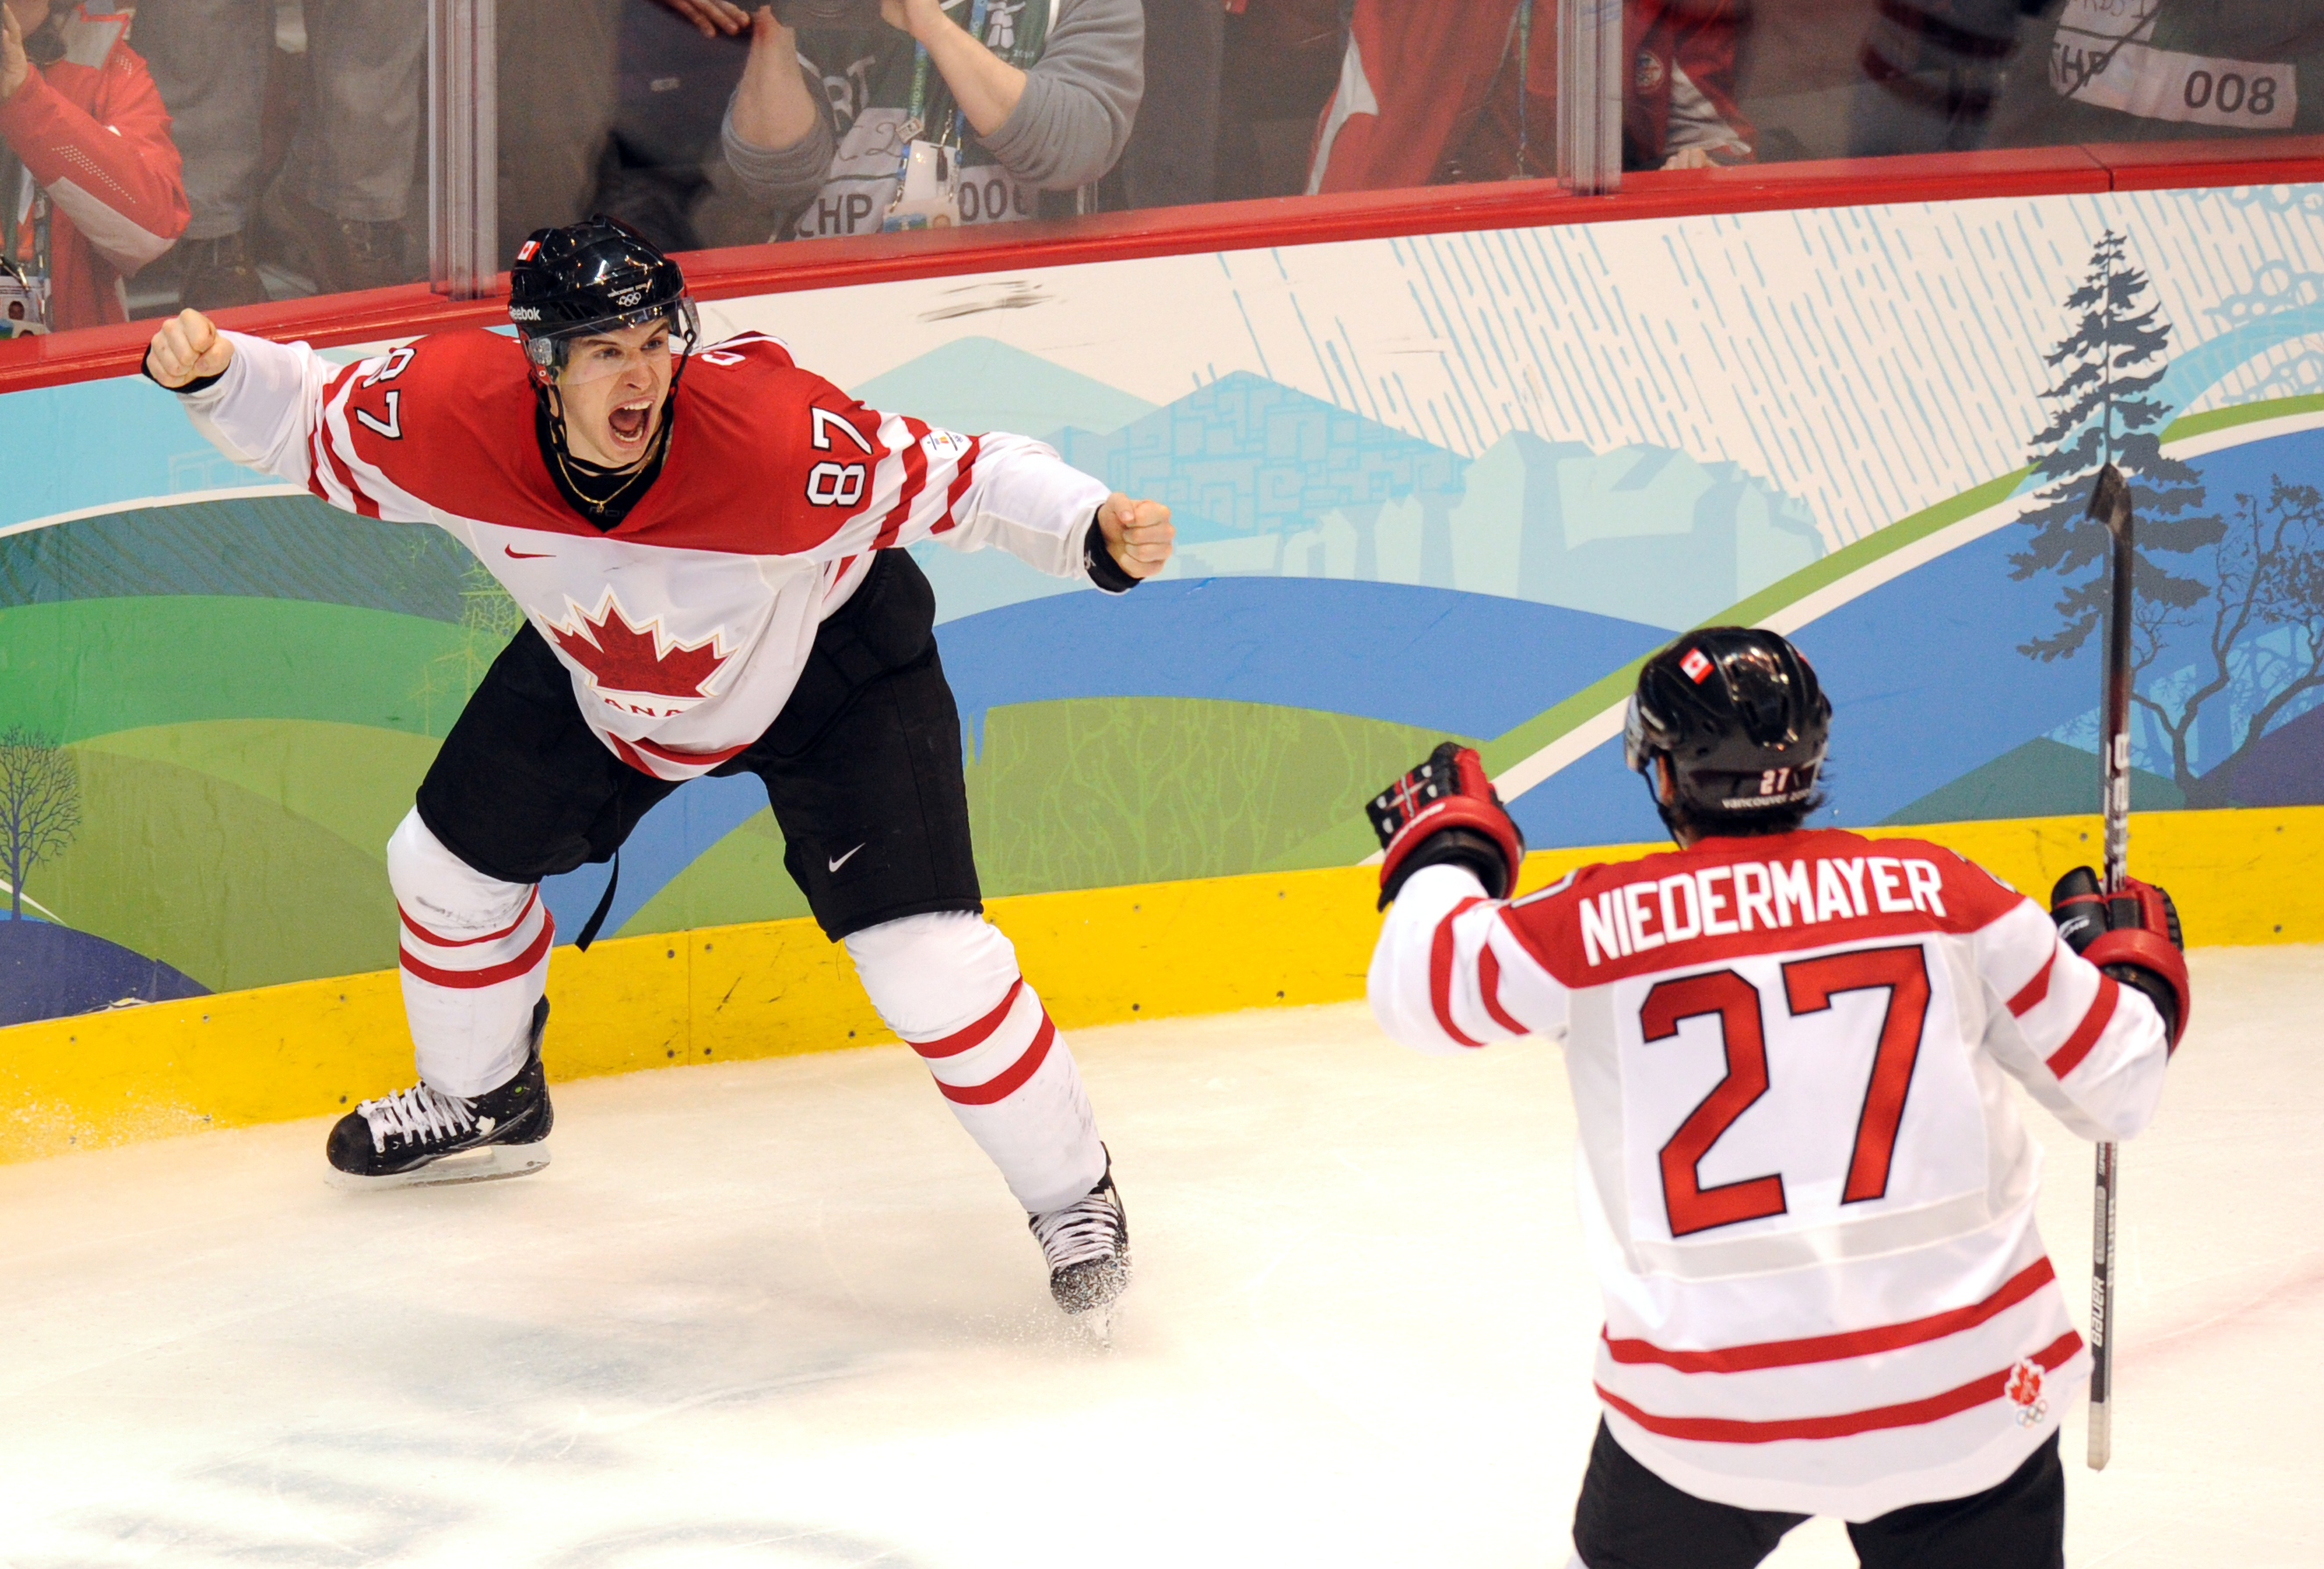 Canadian forward Sidney Crosby (87) and Canadian defenseman Scott Niedermayer (27) jubilate as their team wins gold against the USA in the Men's Gold Medal Hockey match at the Canada Hockey Place during the XXI Winter Olympic Games in Vancouver, Canada on February 28, 2010.